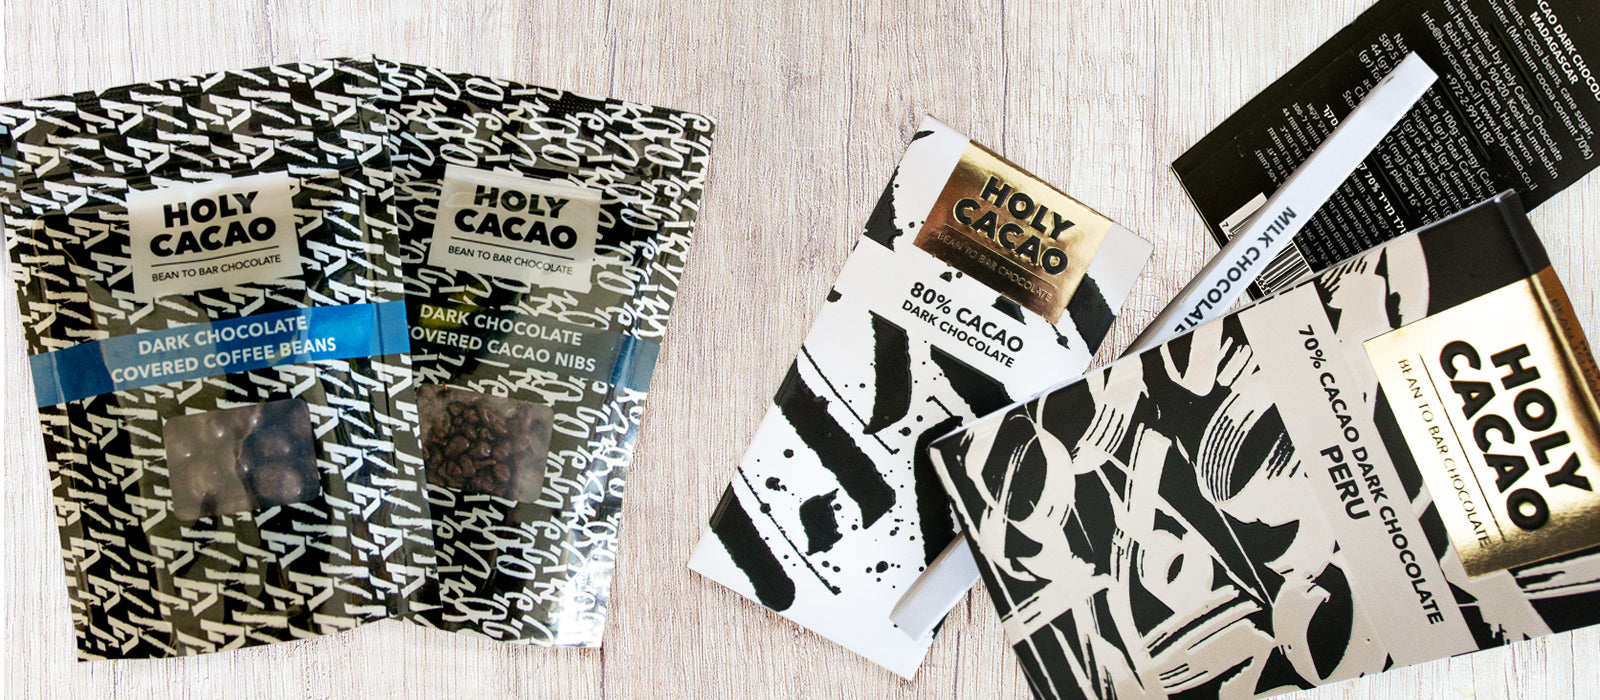 We just added Holy Cacao chocolate to the store again!